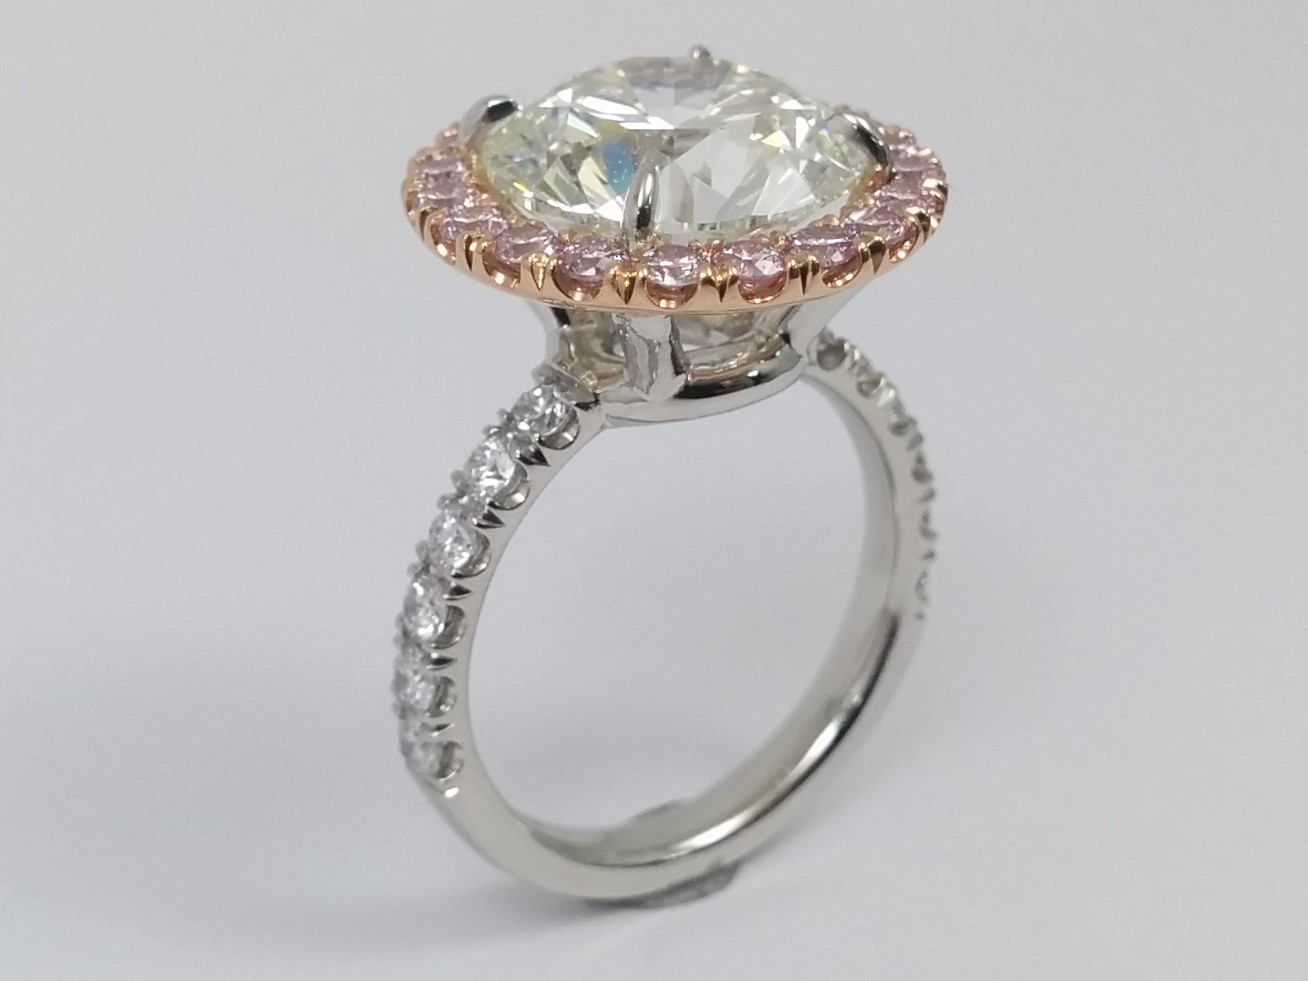 diamond gold itm s halo is engagement brown morganite champagne rings image rose ring peach pink loading